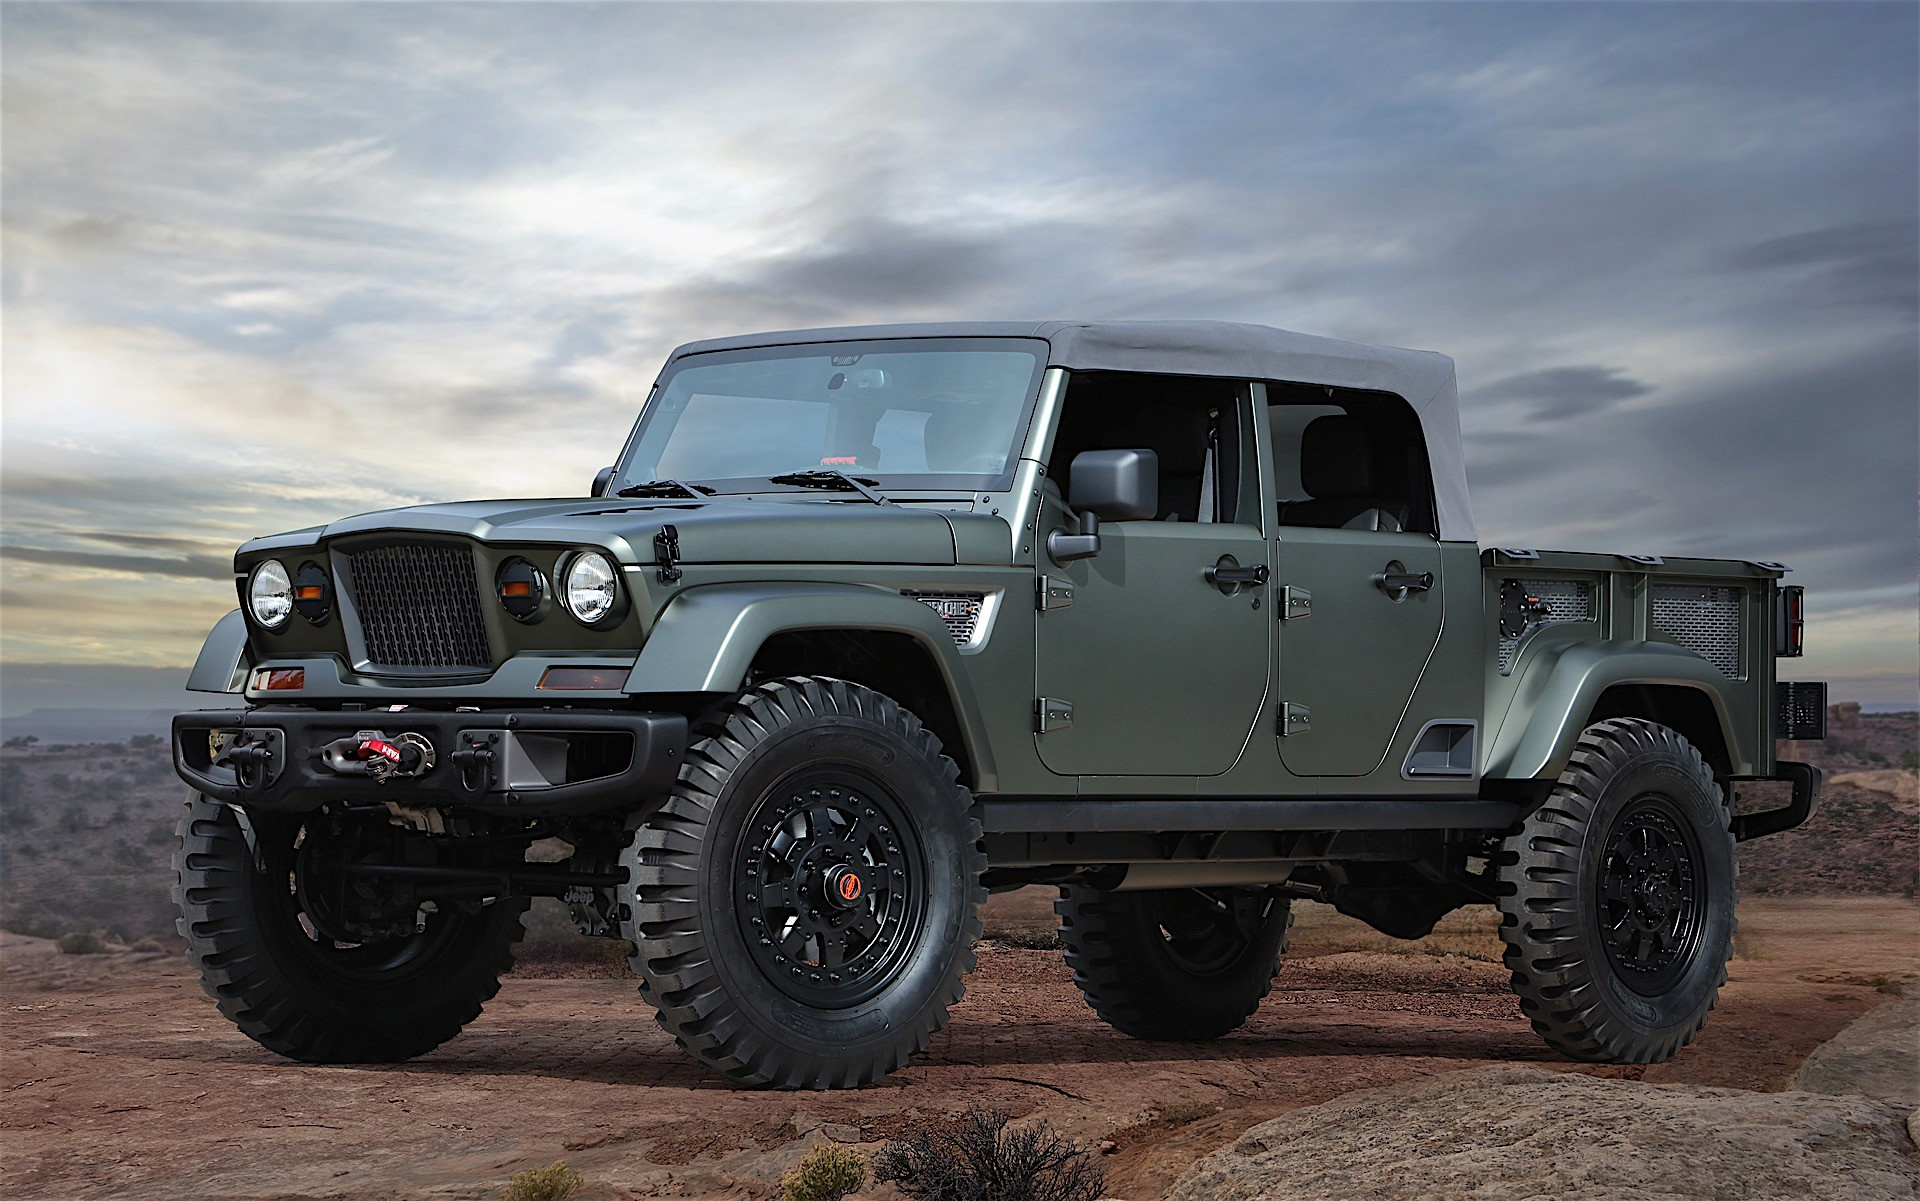 2018 jeep kl. unique jeep this on the other hand i would definitely rock for 2018 jeep kl a